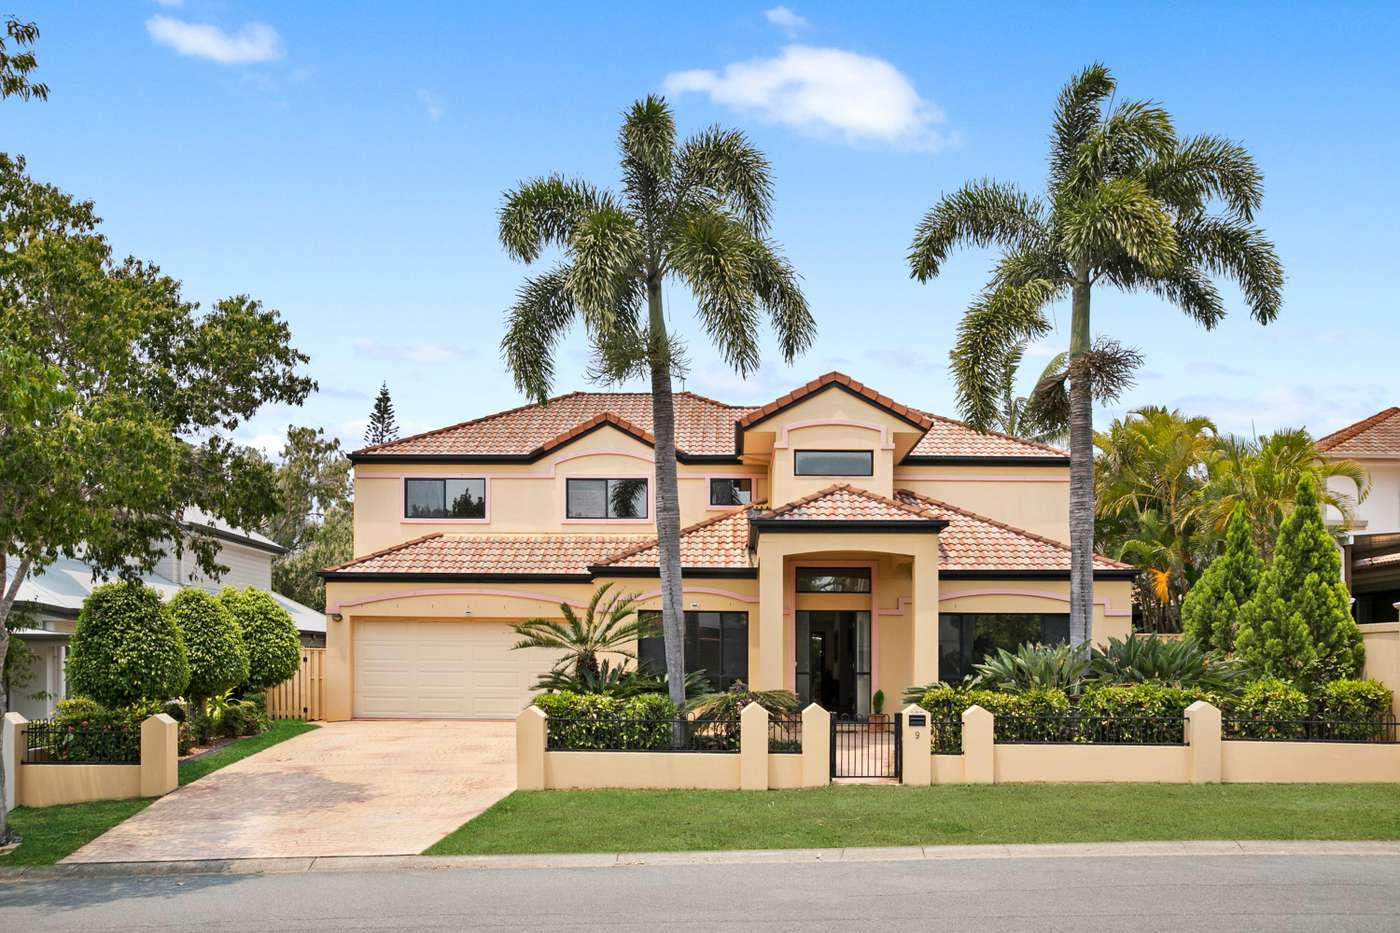 Main view of Homely house listing, 9 Pine Valley Drive, Robina, QLD 4226